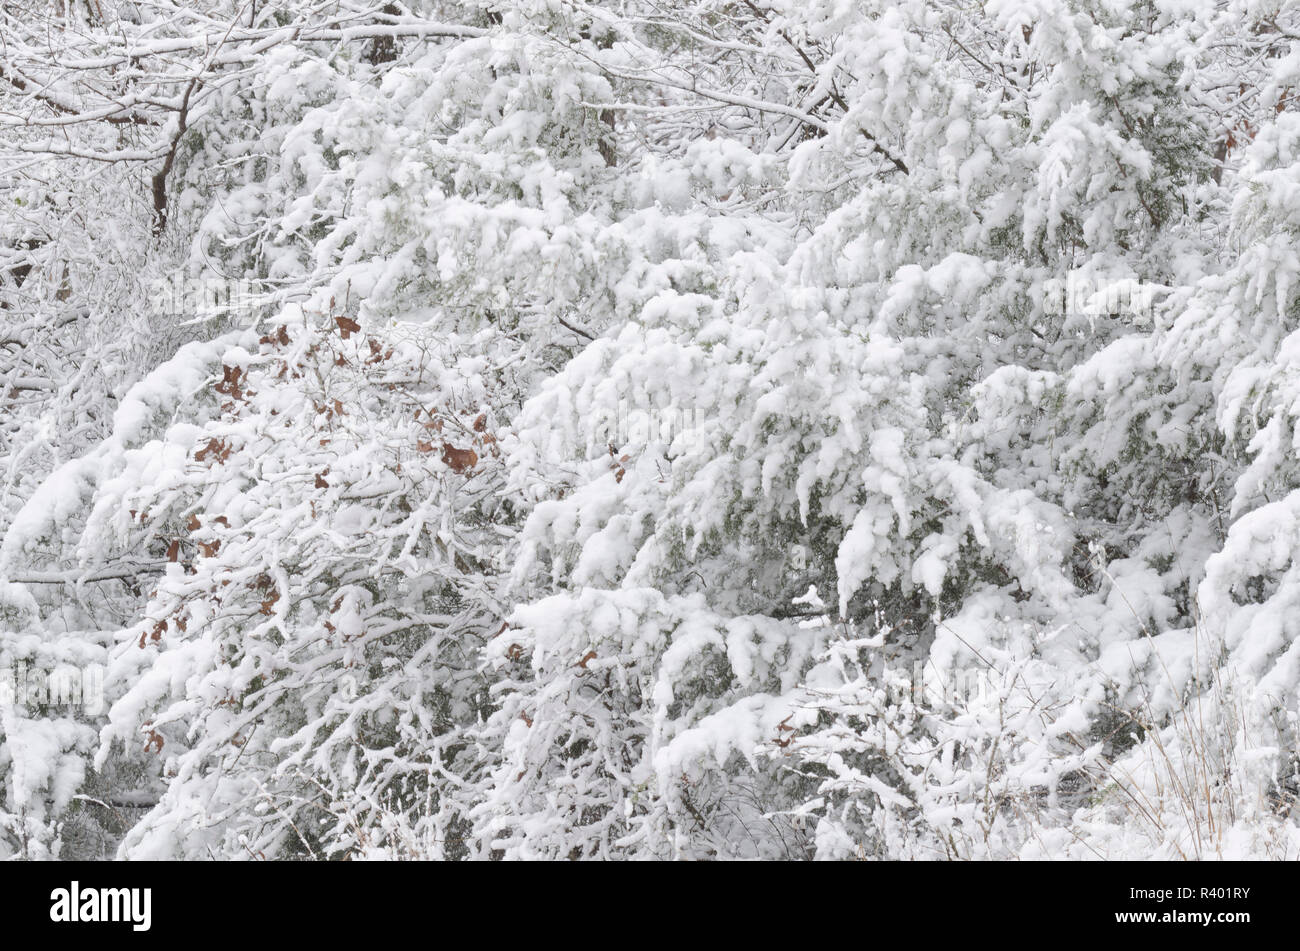 Eastern Red Cedar, Juniperus virginiana, and shrubbery with clinging heavy wet snow - Stock Image